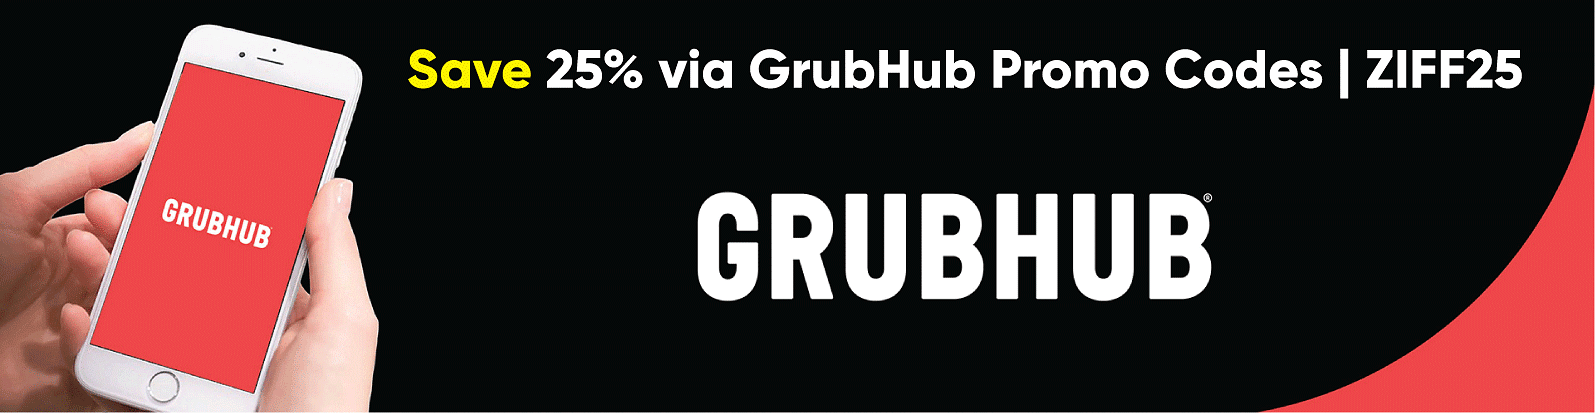 Grubhub Promo Code First Order Flat 10 Off On All Treats